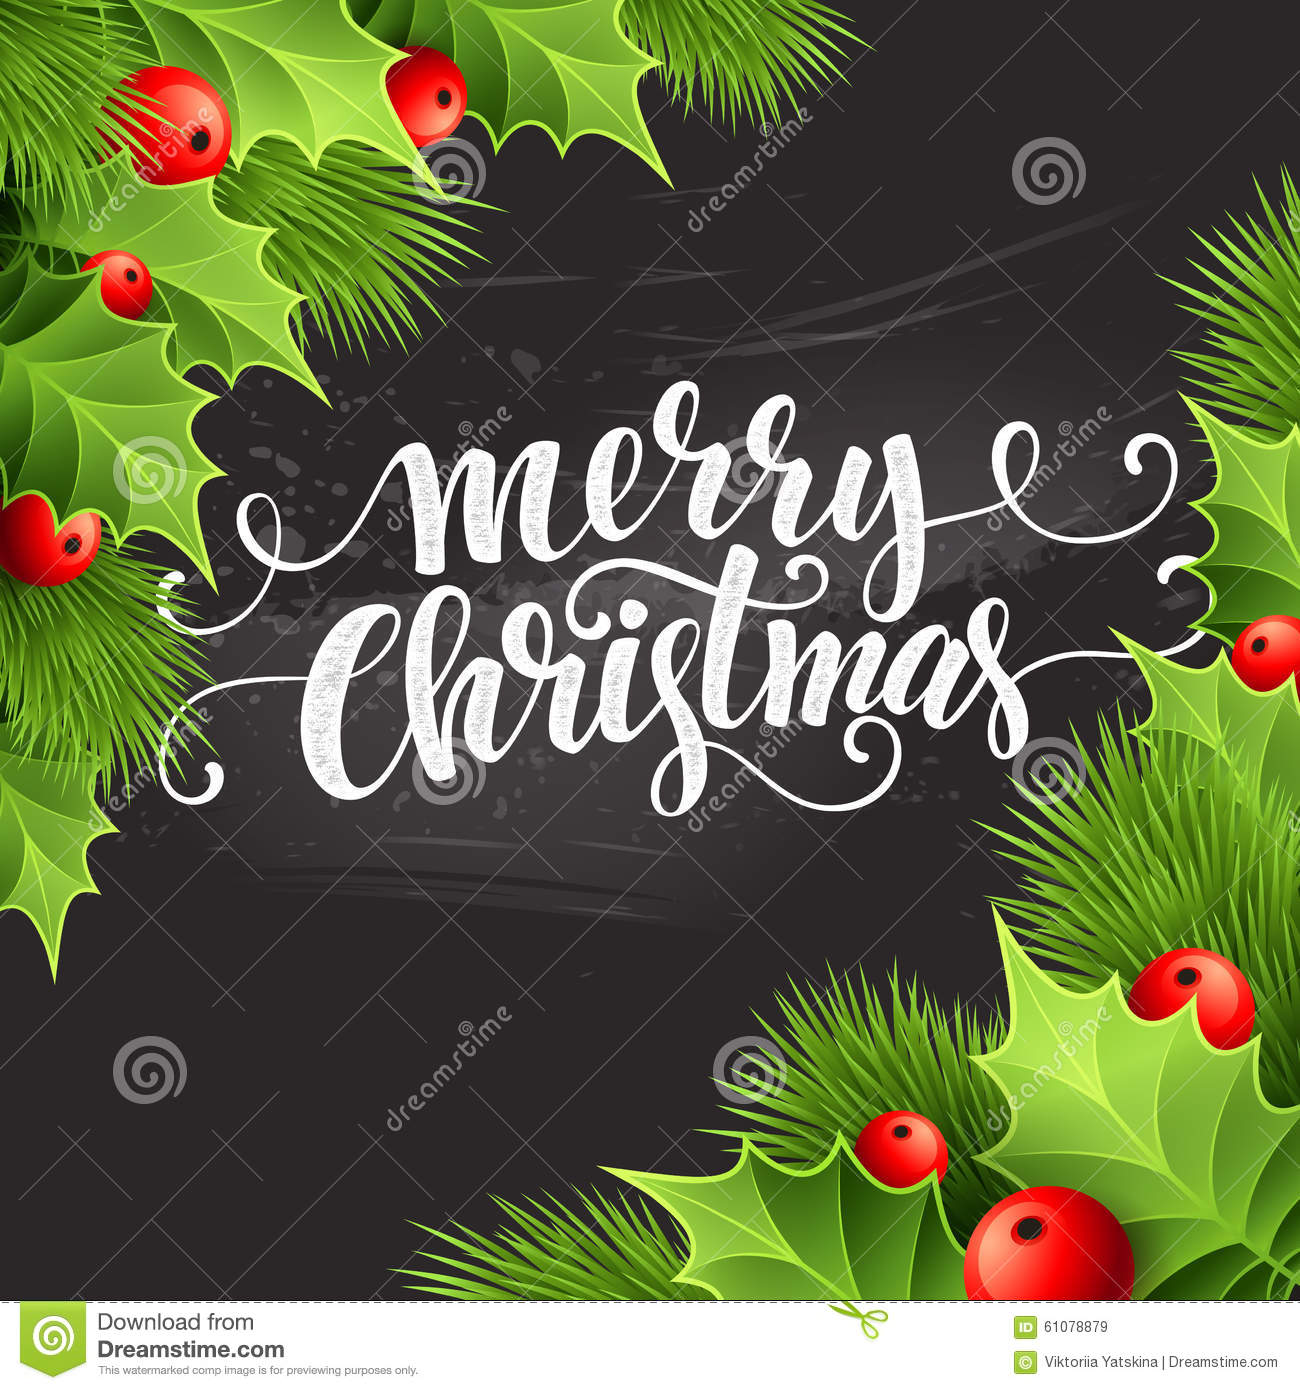 Board Decoration For Christmas: Christmas Decoration On Chalk Board. Vector Stock Vector